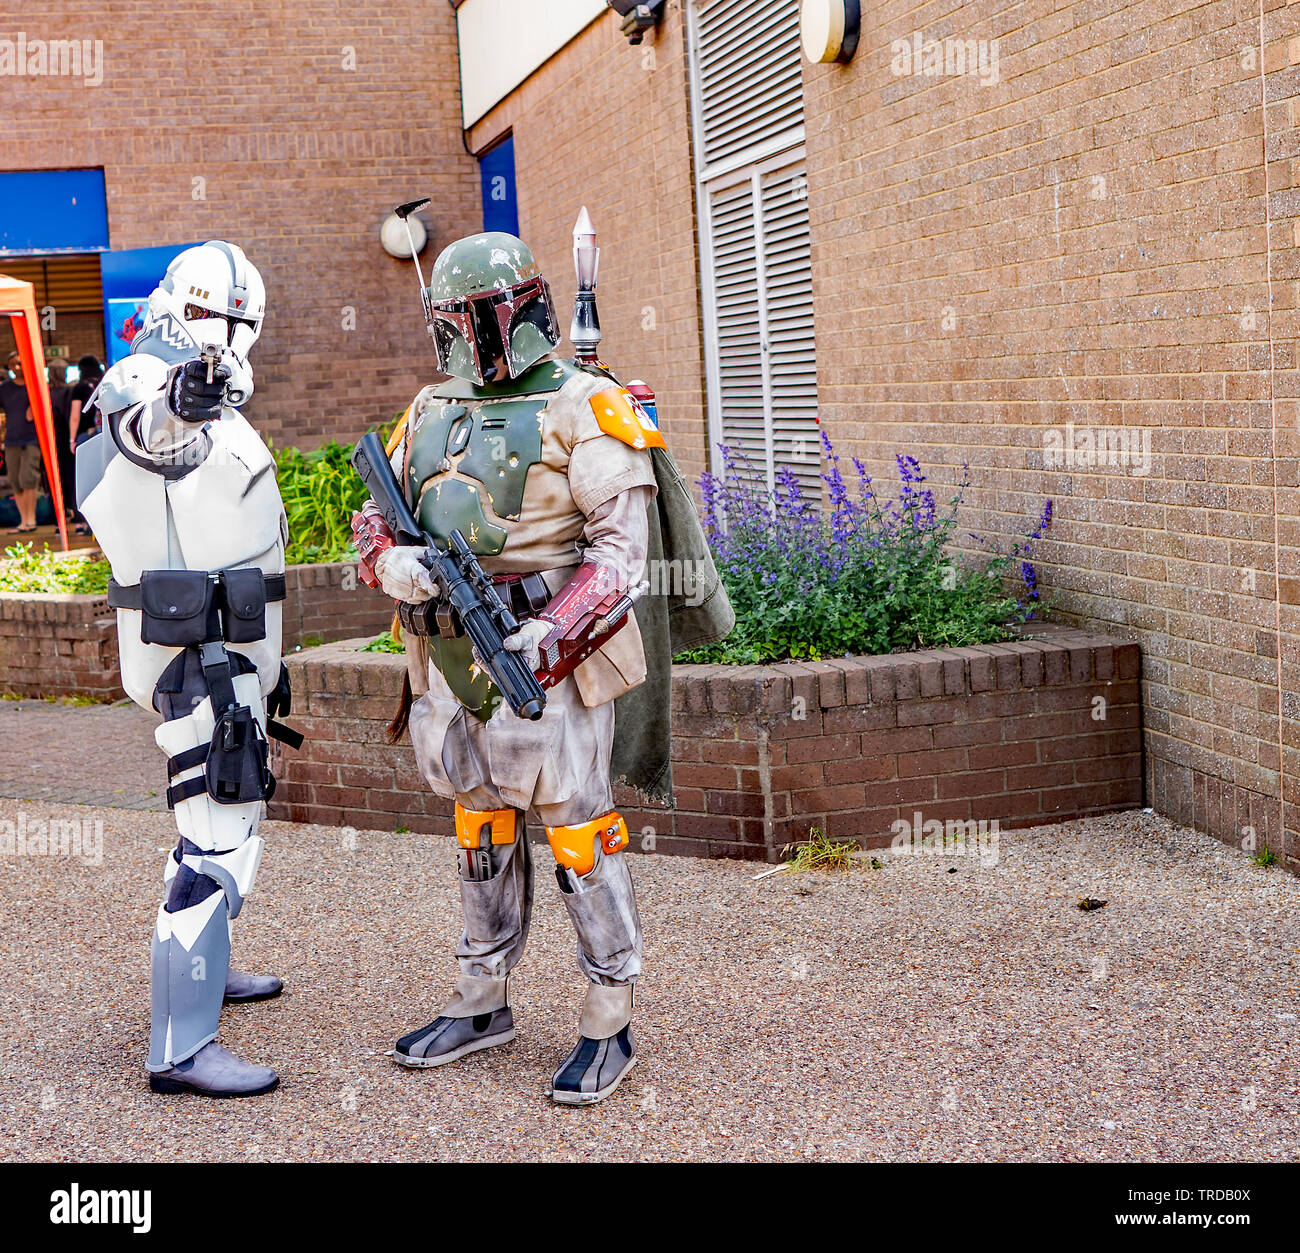 Great Yarmouth Comicon 2019 – Portrait of two storm troopers from the hit Star Wars saga outside the Comicon event in the seaside town of Great Yarmou - Stock Image